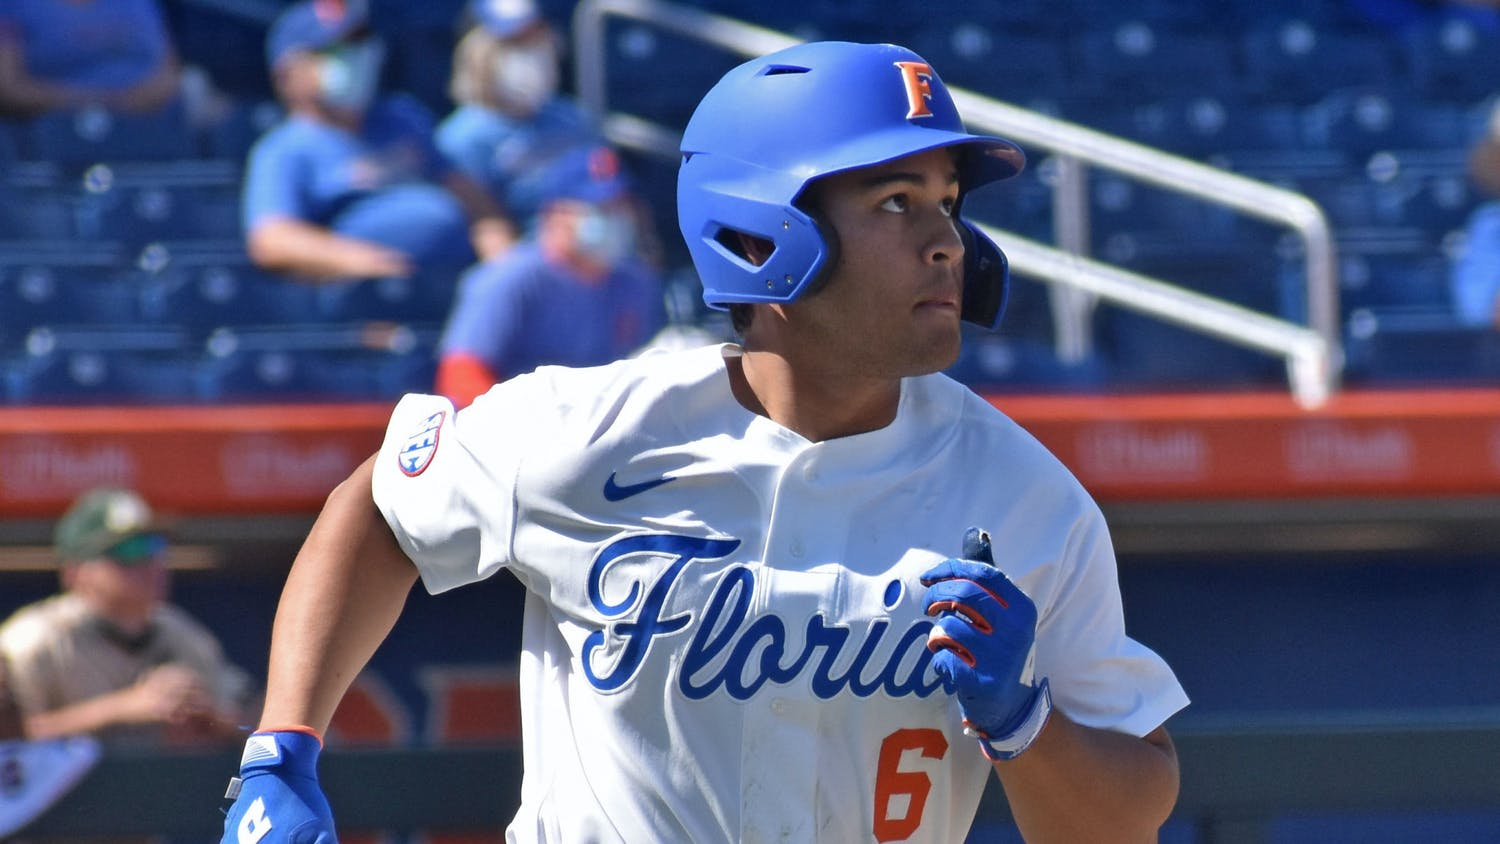 Calilao's heroics ended a 3-2 pitching battle and lifted Florida over their in-state rival to move to 22-11 on the year. Photo from UF-Jacksonville March 14, 2021.